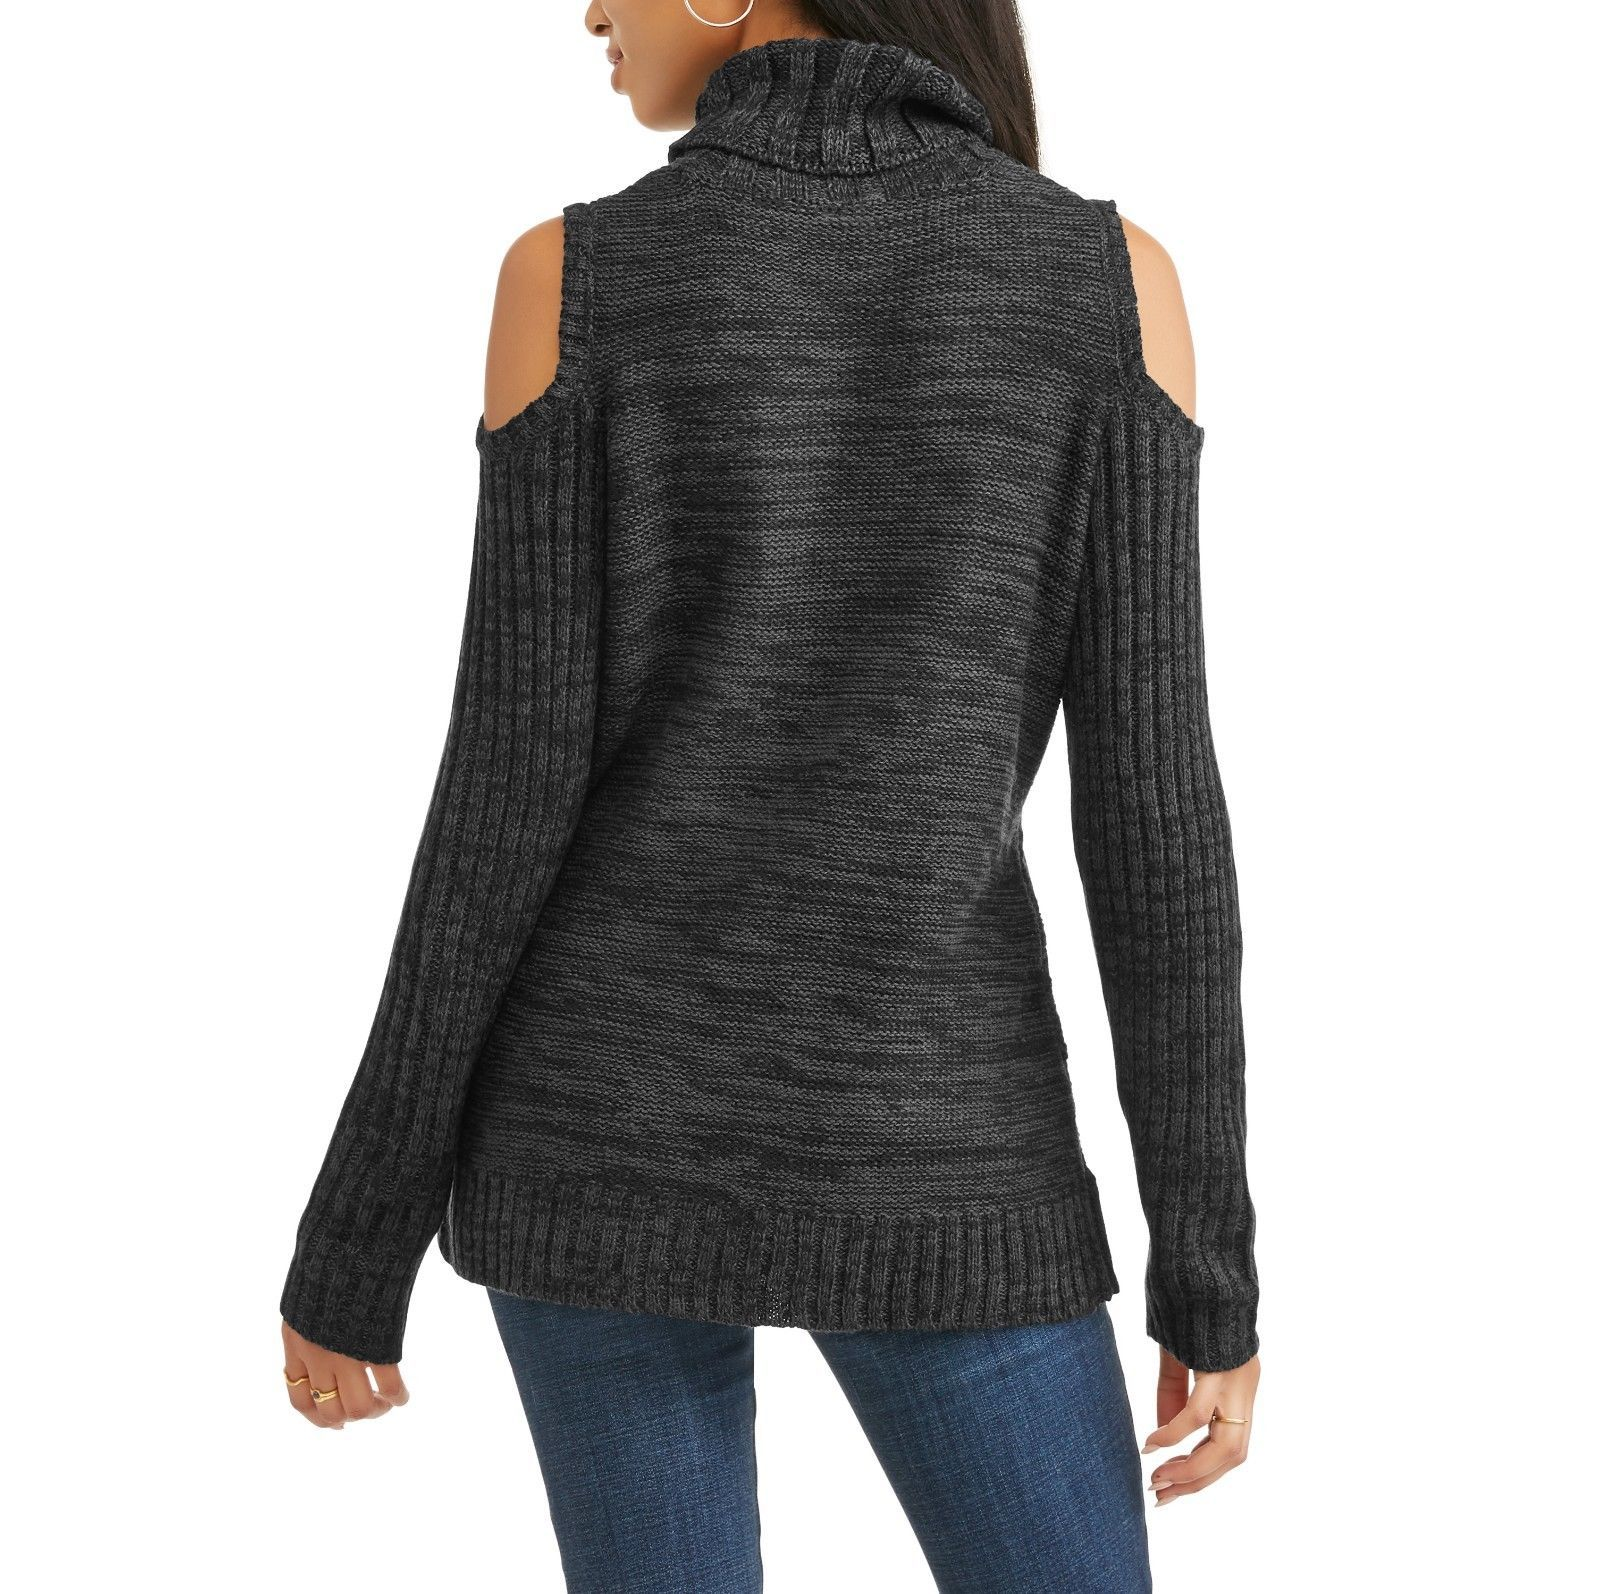 Faded Glory Women's Cold Shoulder Sweater Size Large 12-14 Black Marled